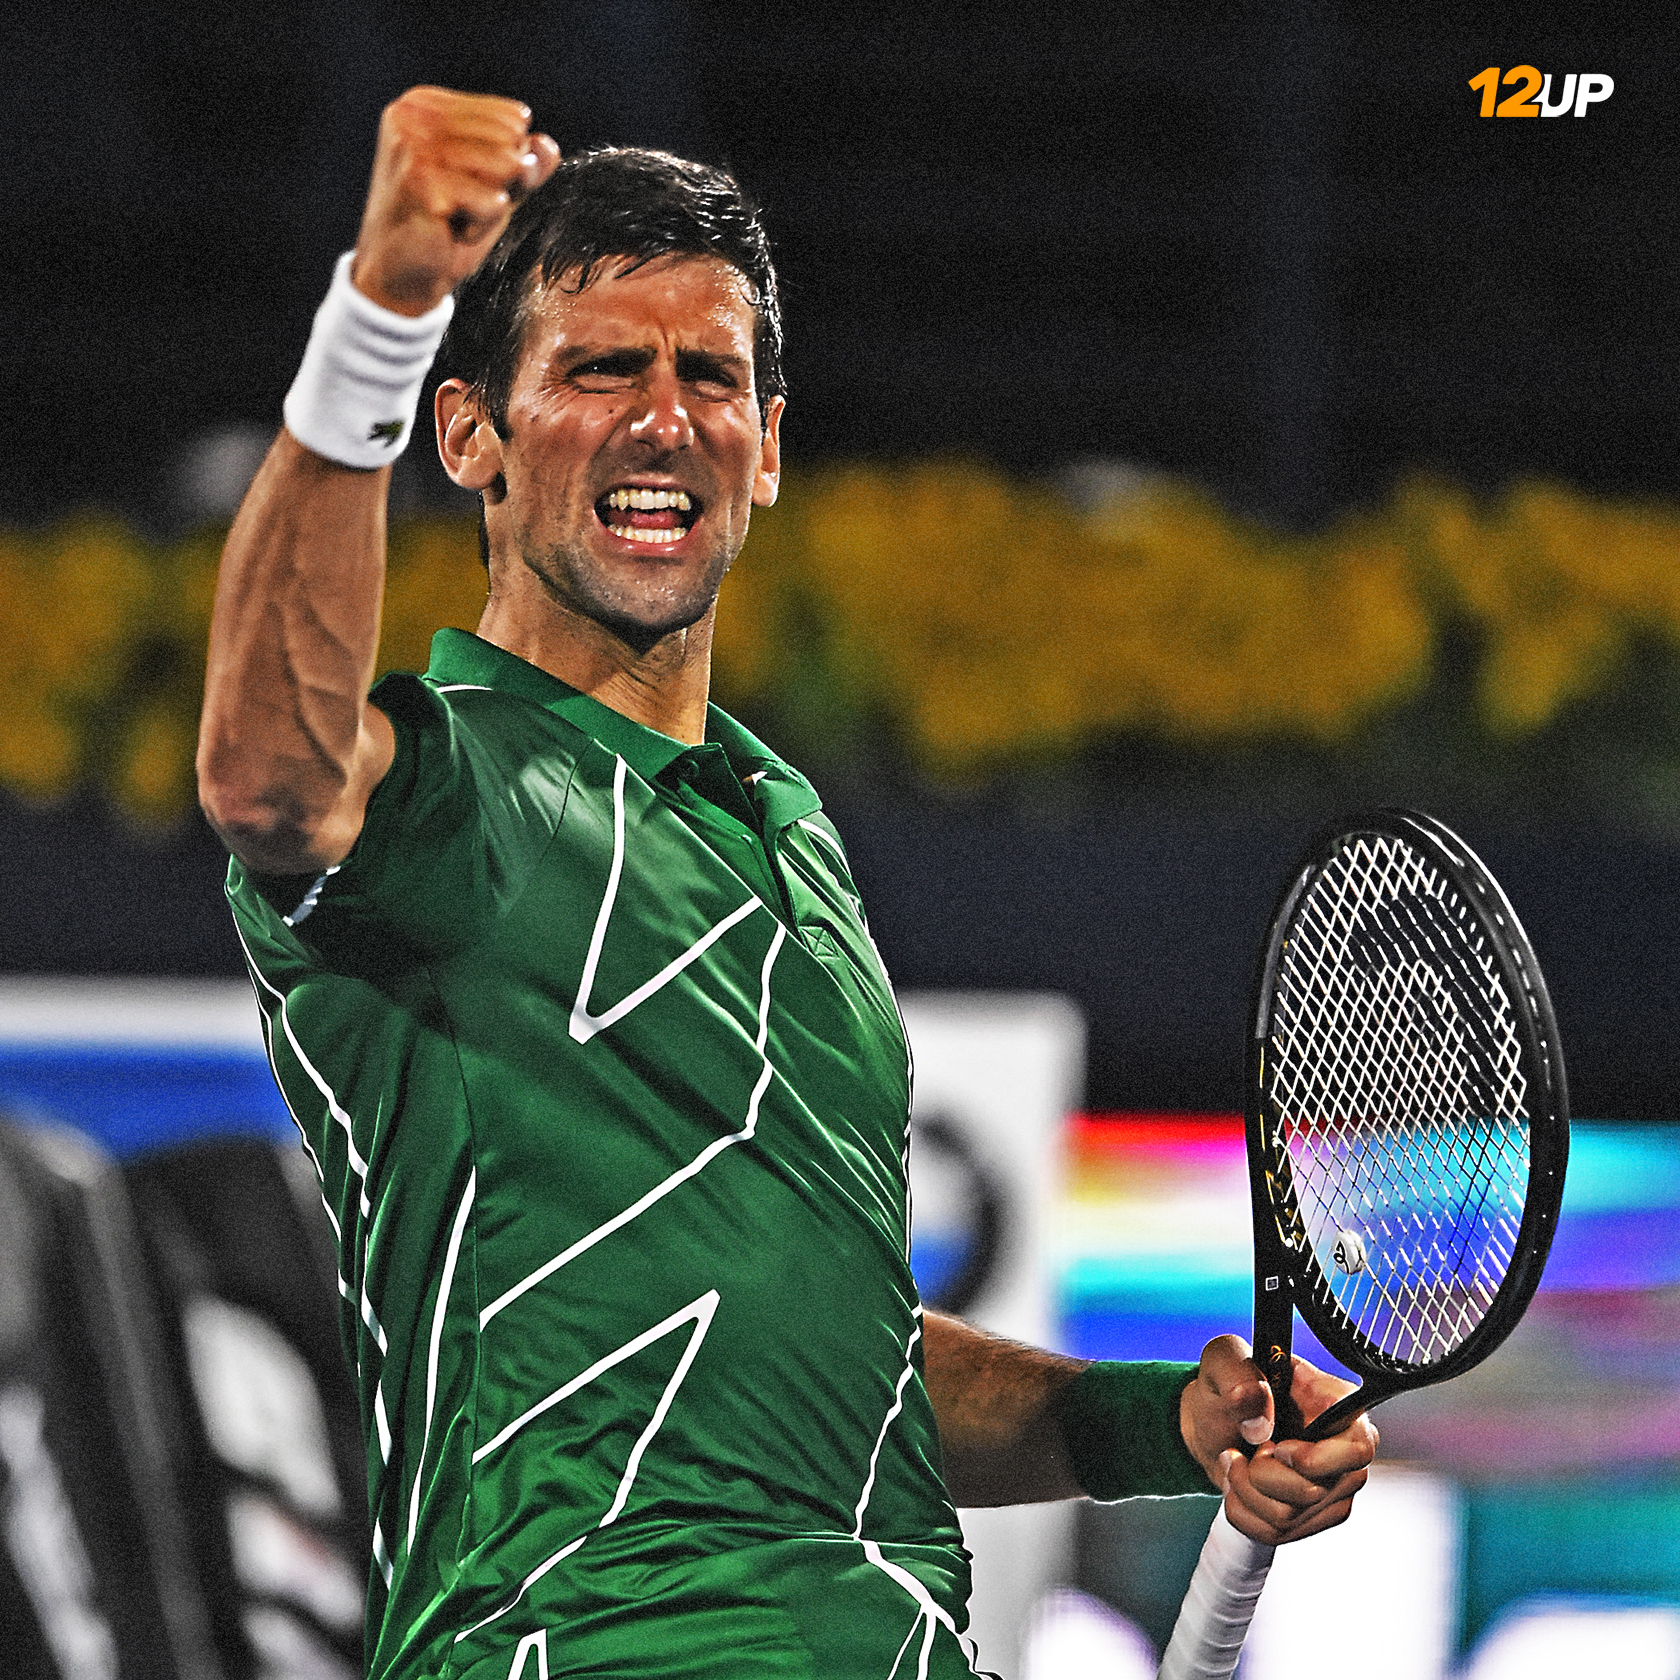 Happy birthday to one of the most underrated athletes of our time, Novak Djokovic!